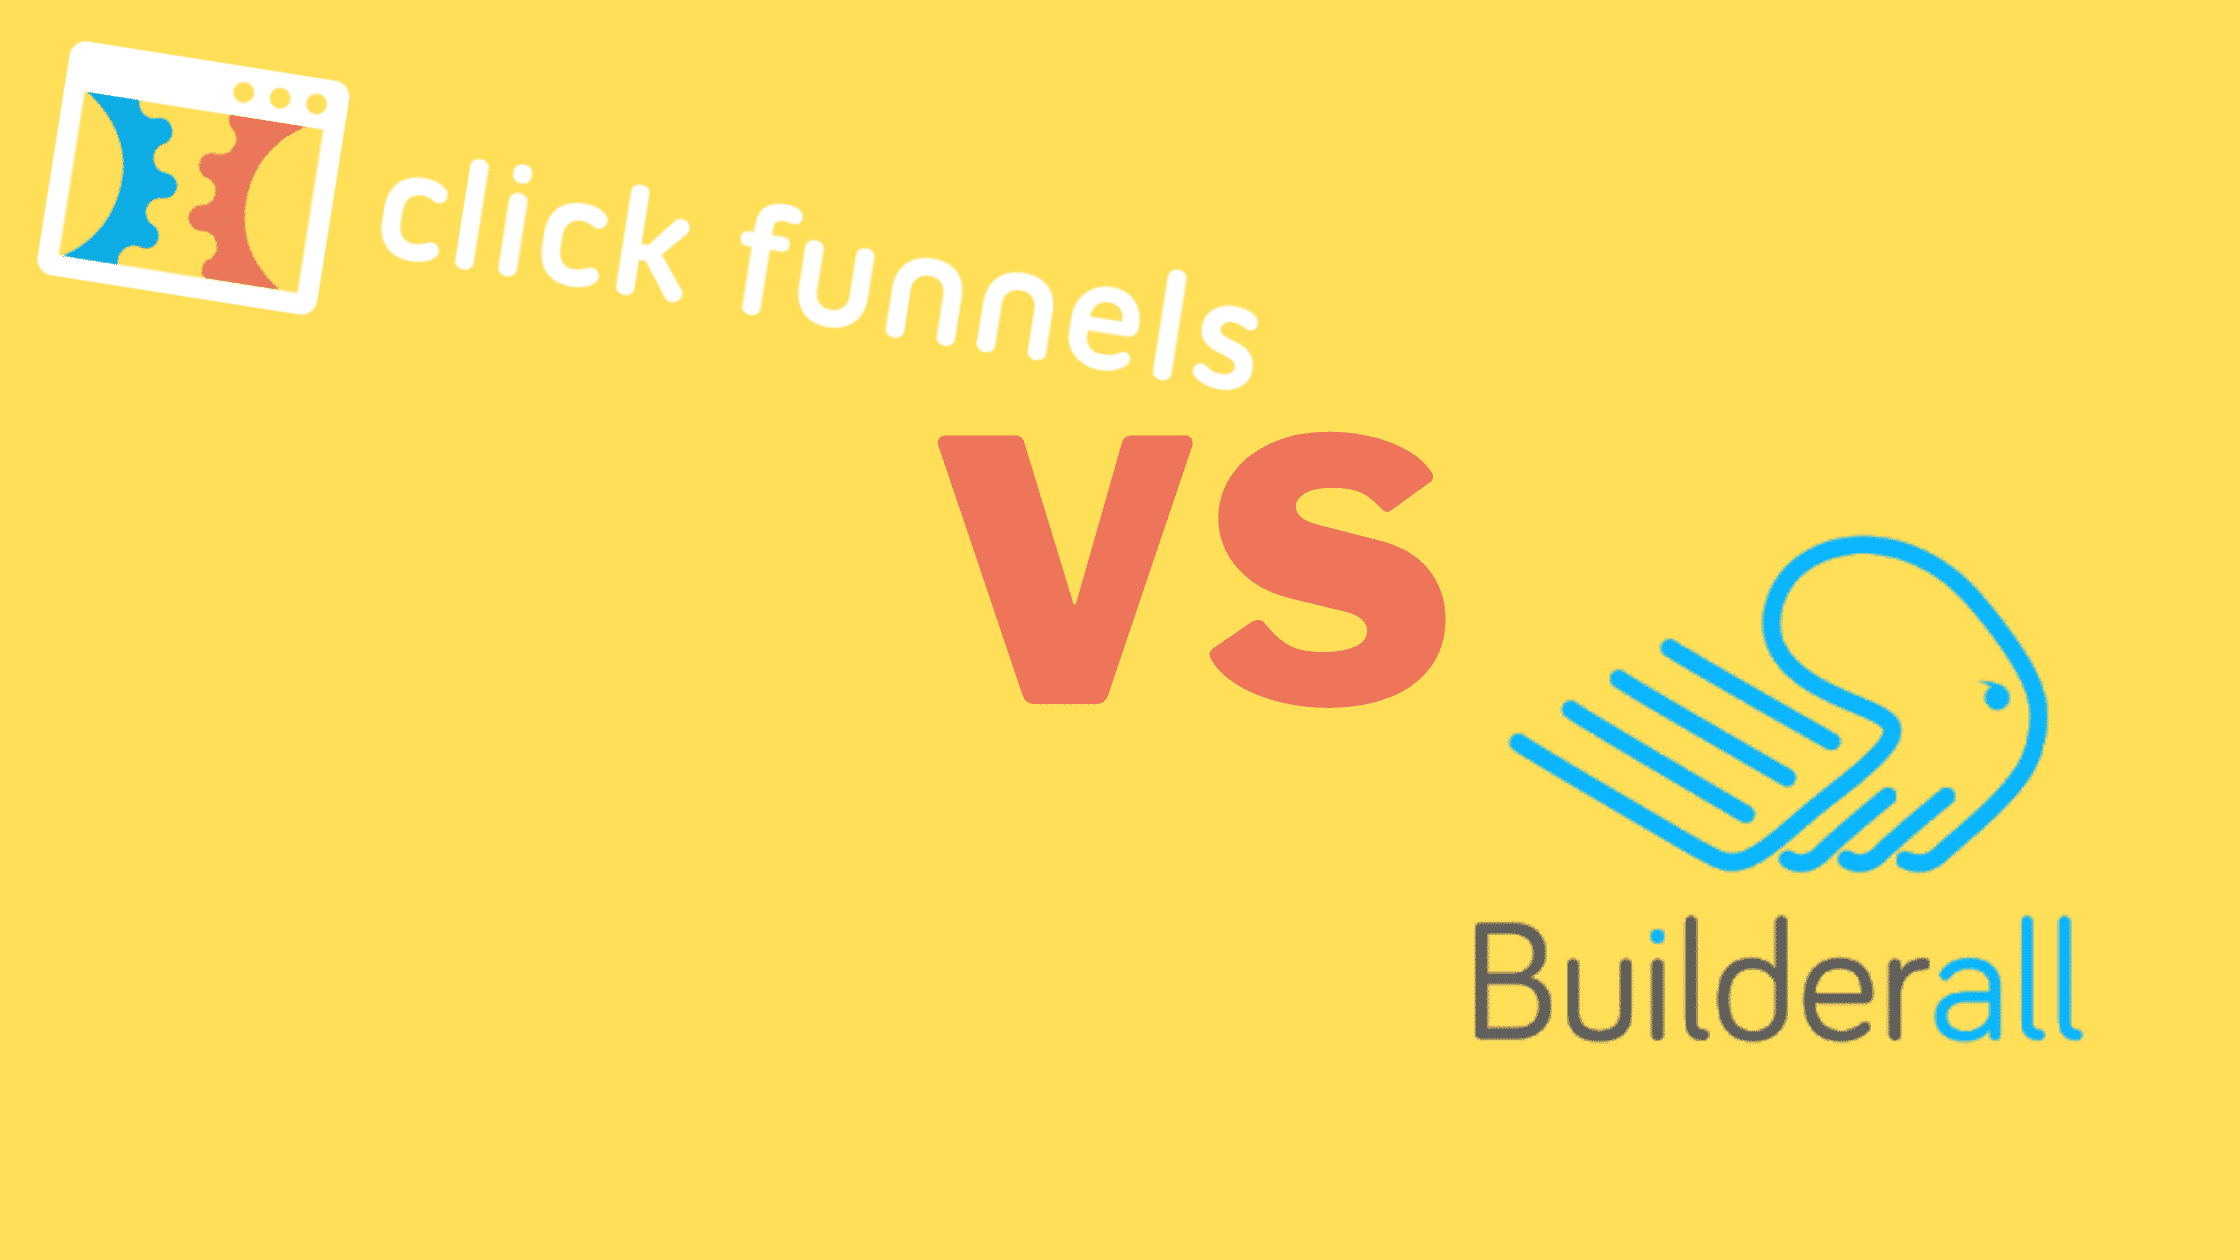 Which one should you use, ClickFunnels or Builderall?